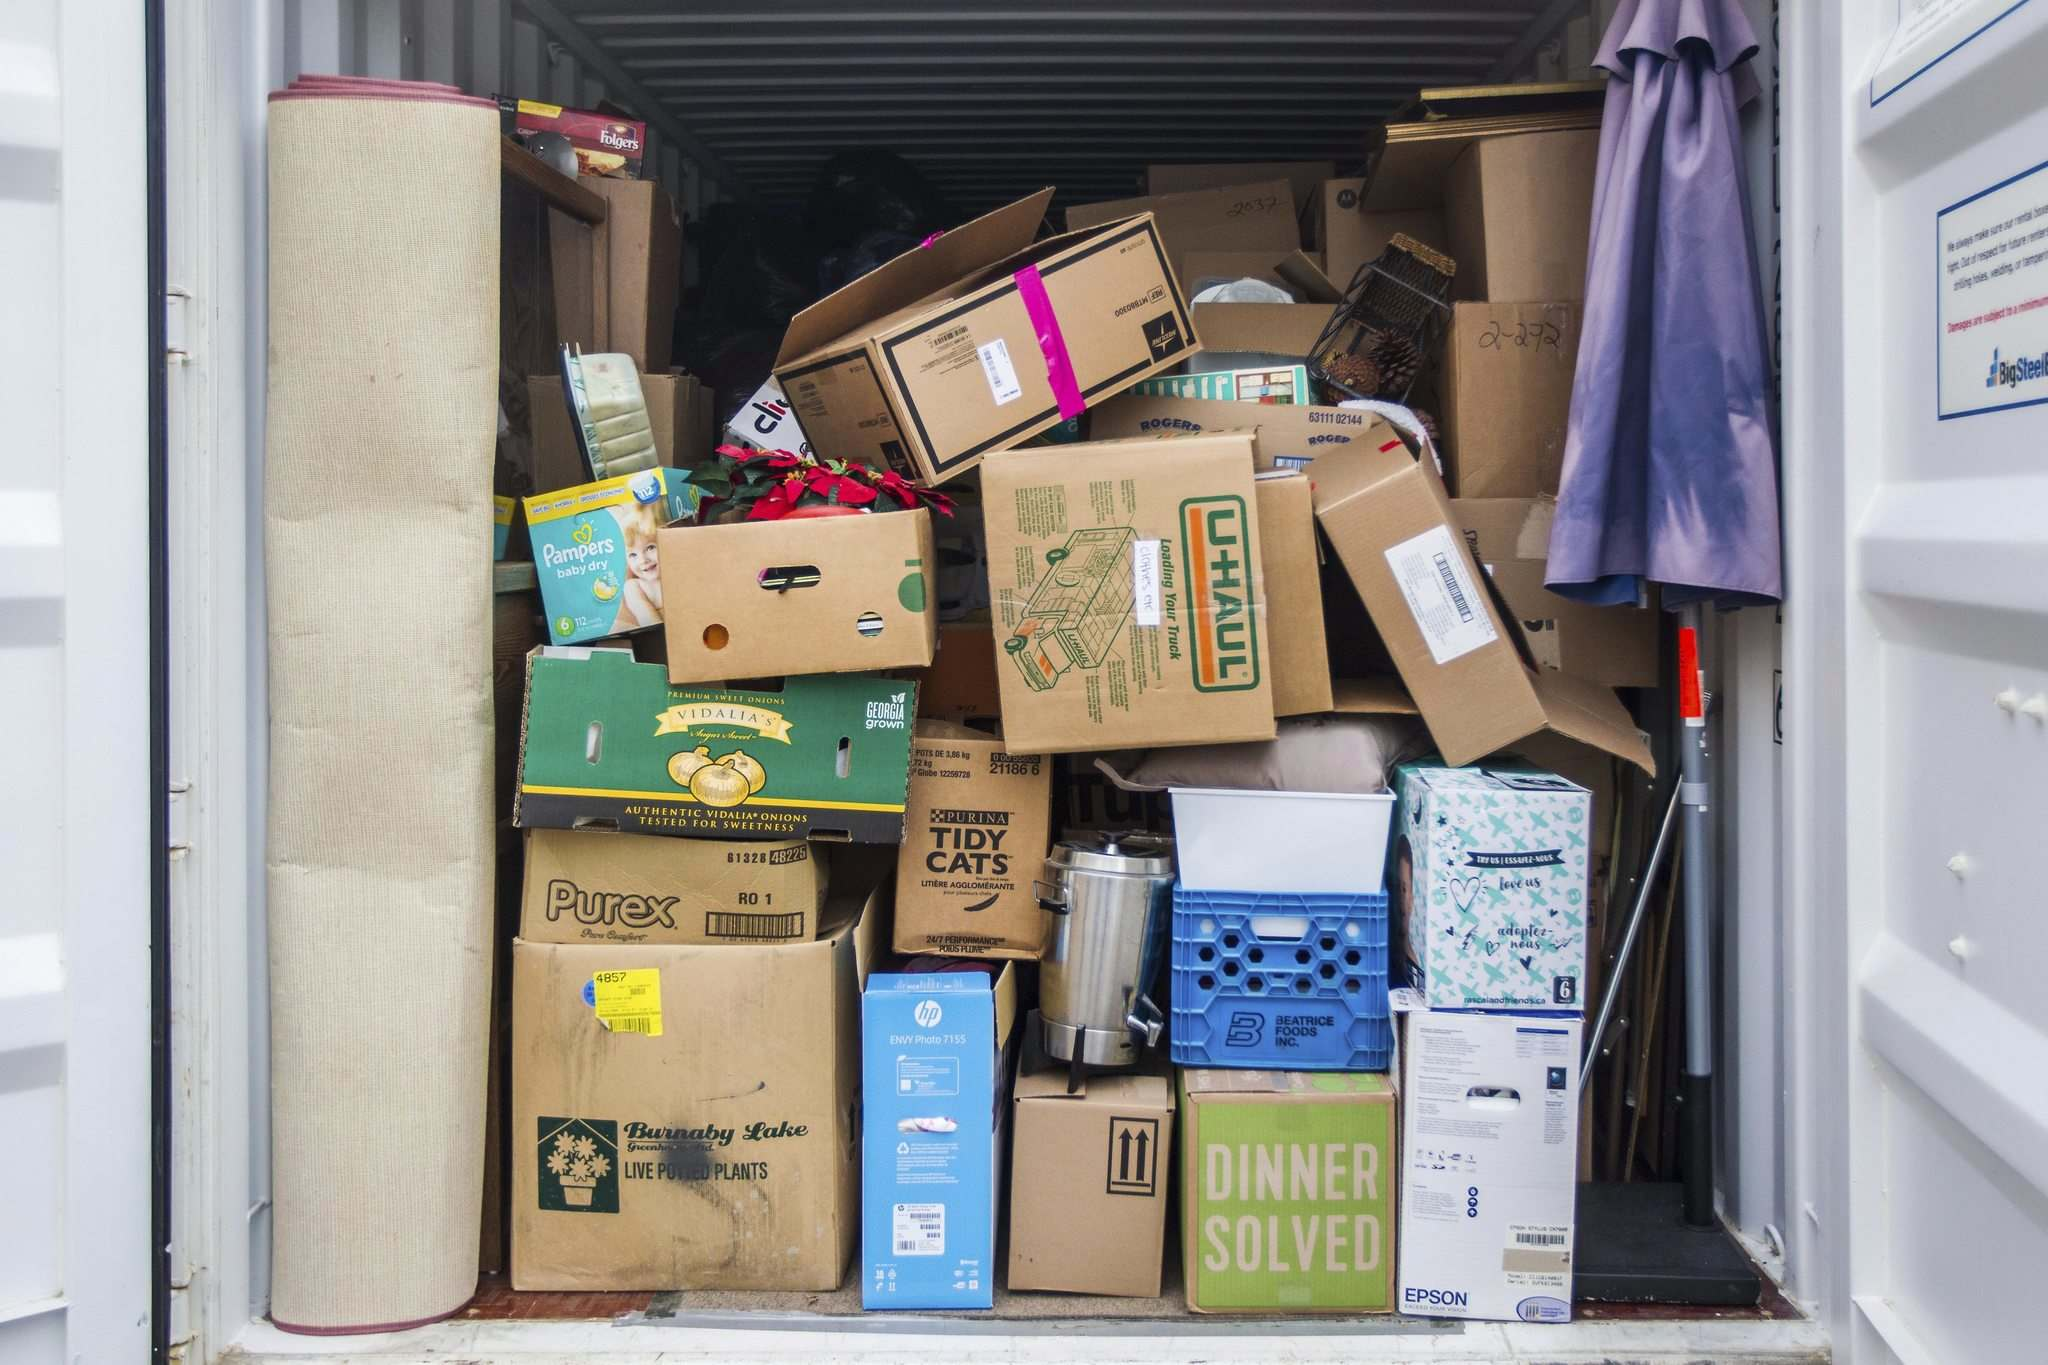 All donations to Mission Thrift Store are quarantined in this shipping container before going on the floor. (Mikaela MacKenzie / Winnipeg Free Press)